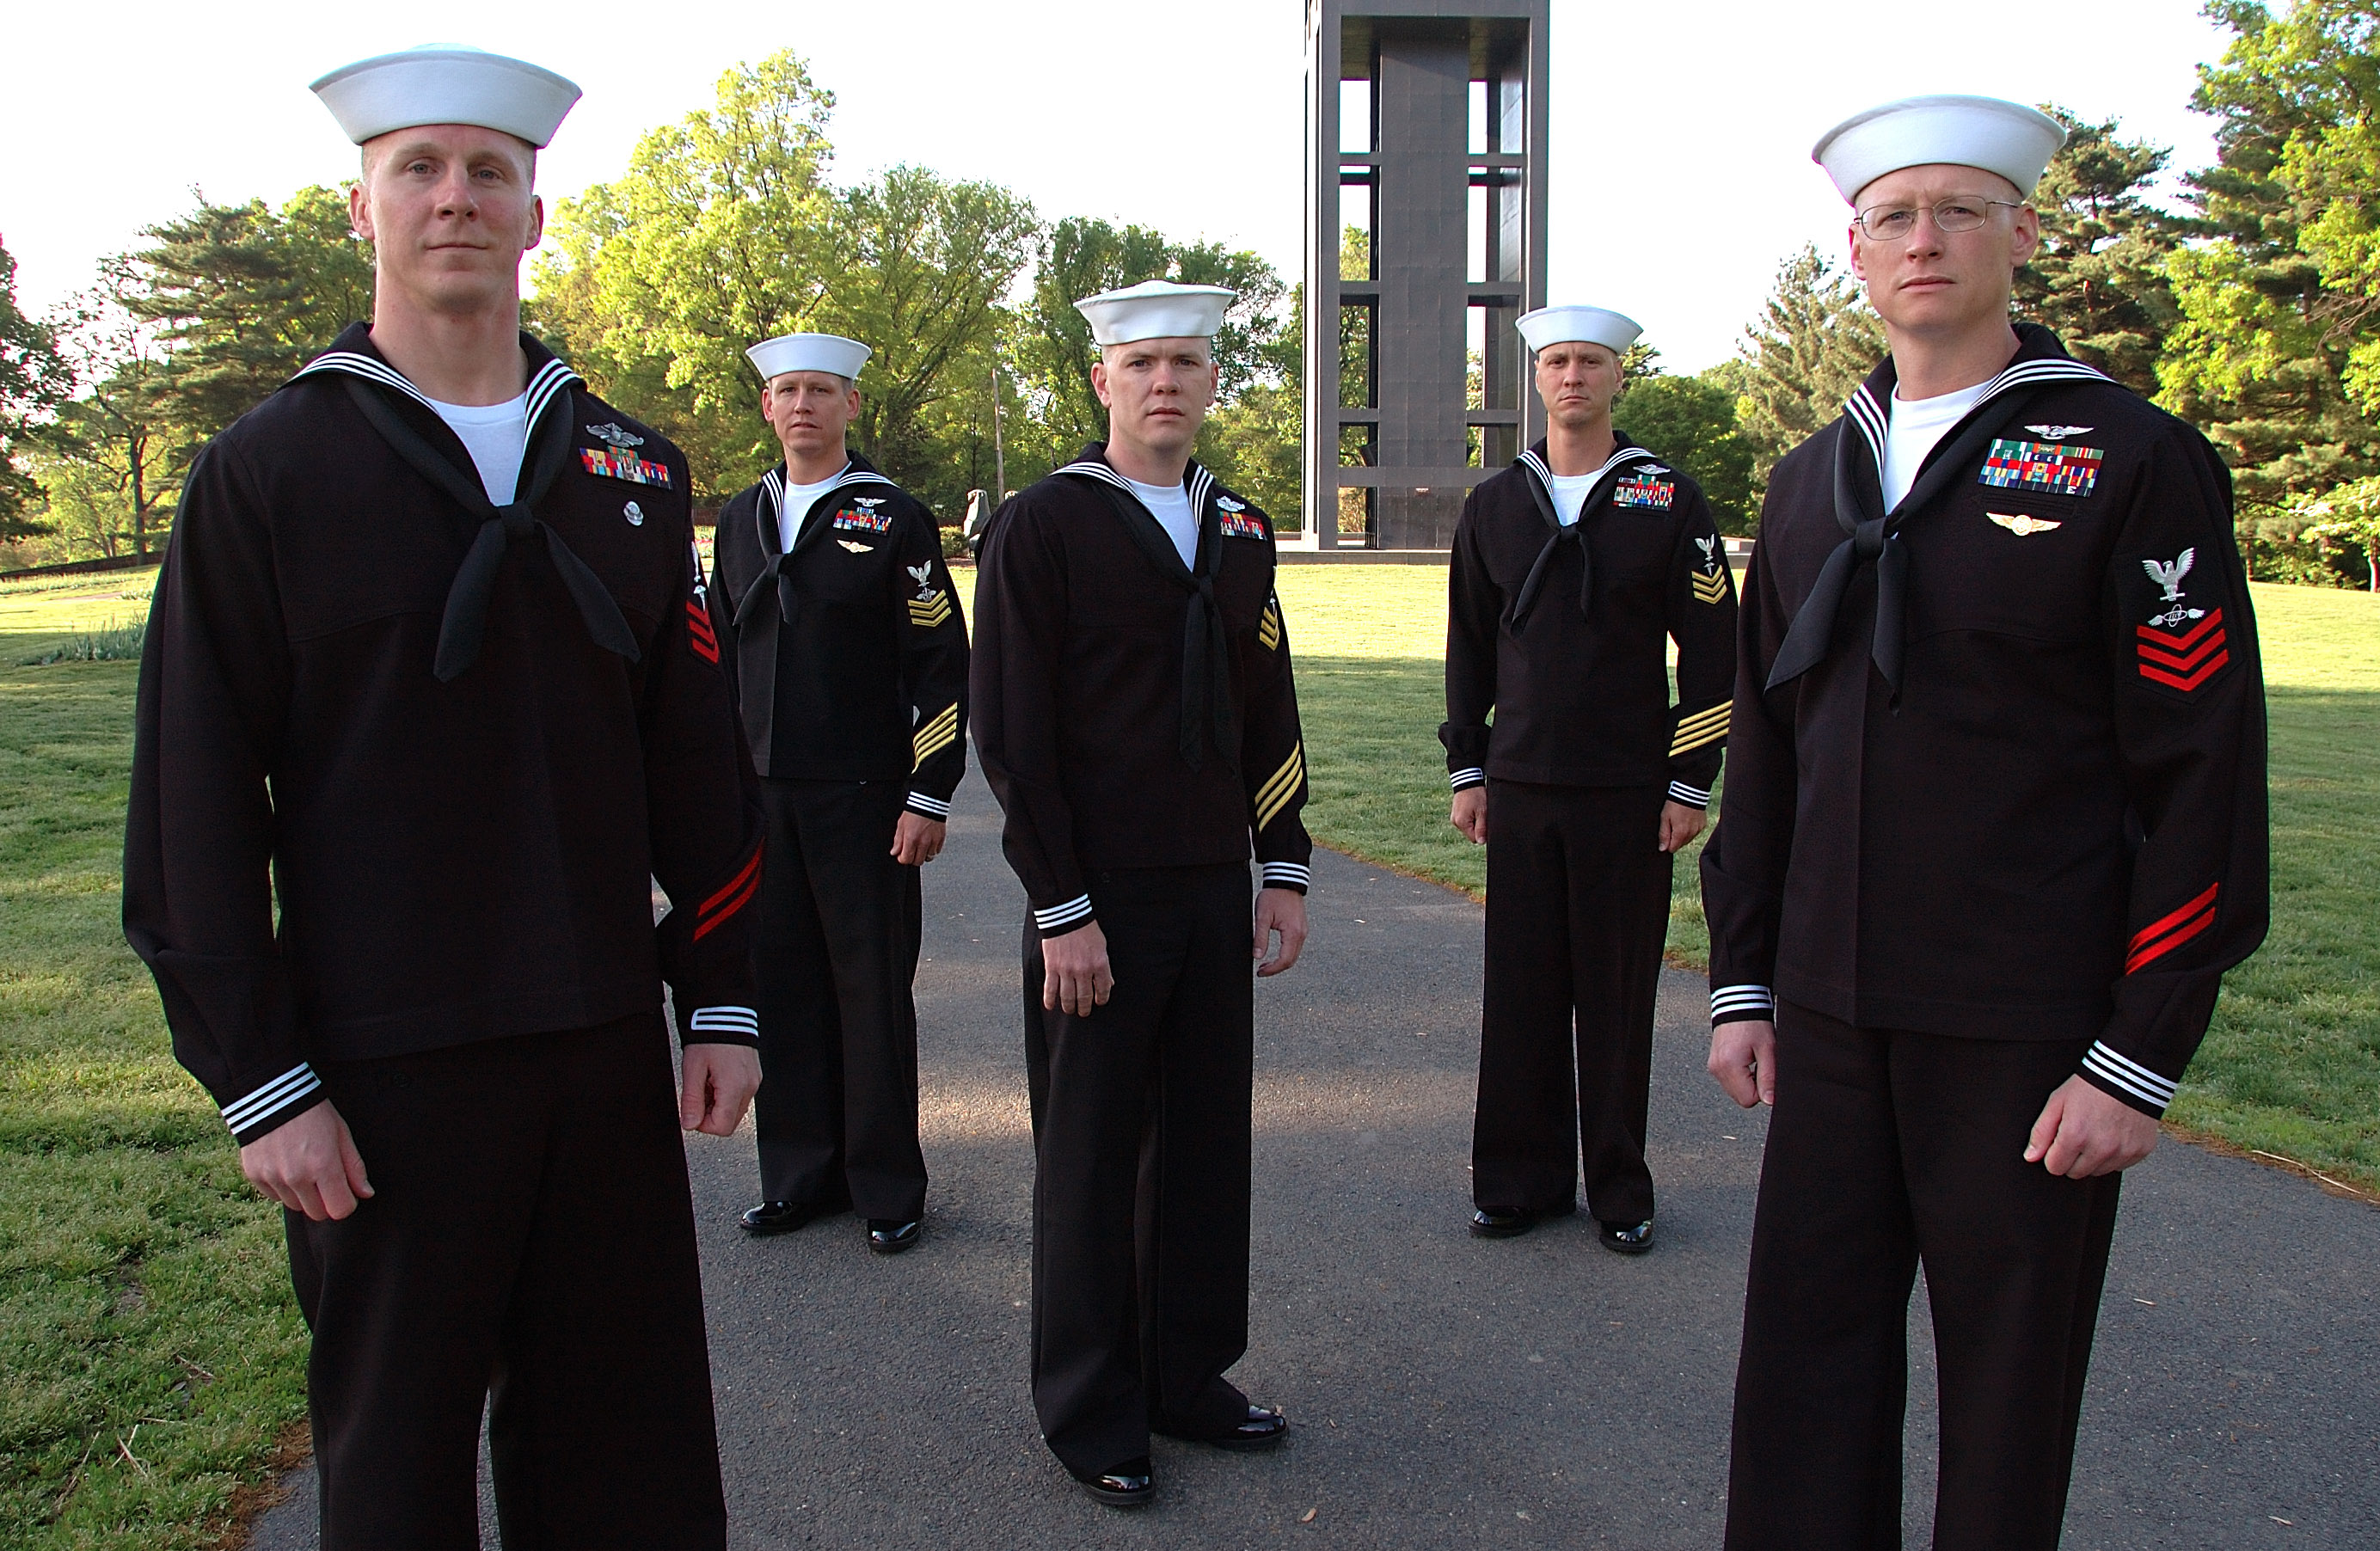 Description Five US Navy petty officers in uniform.jpg